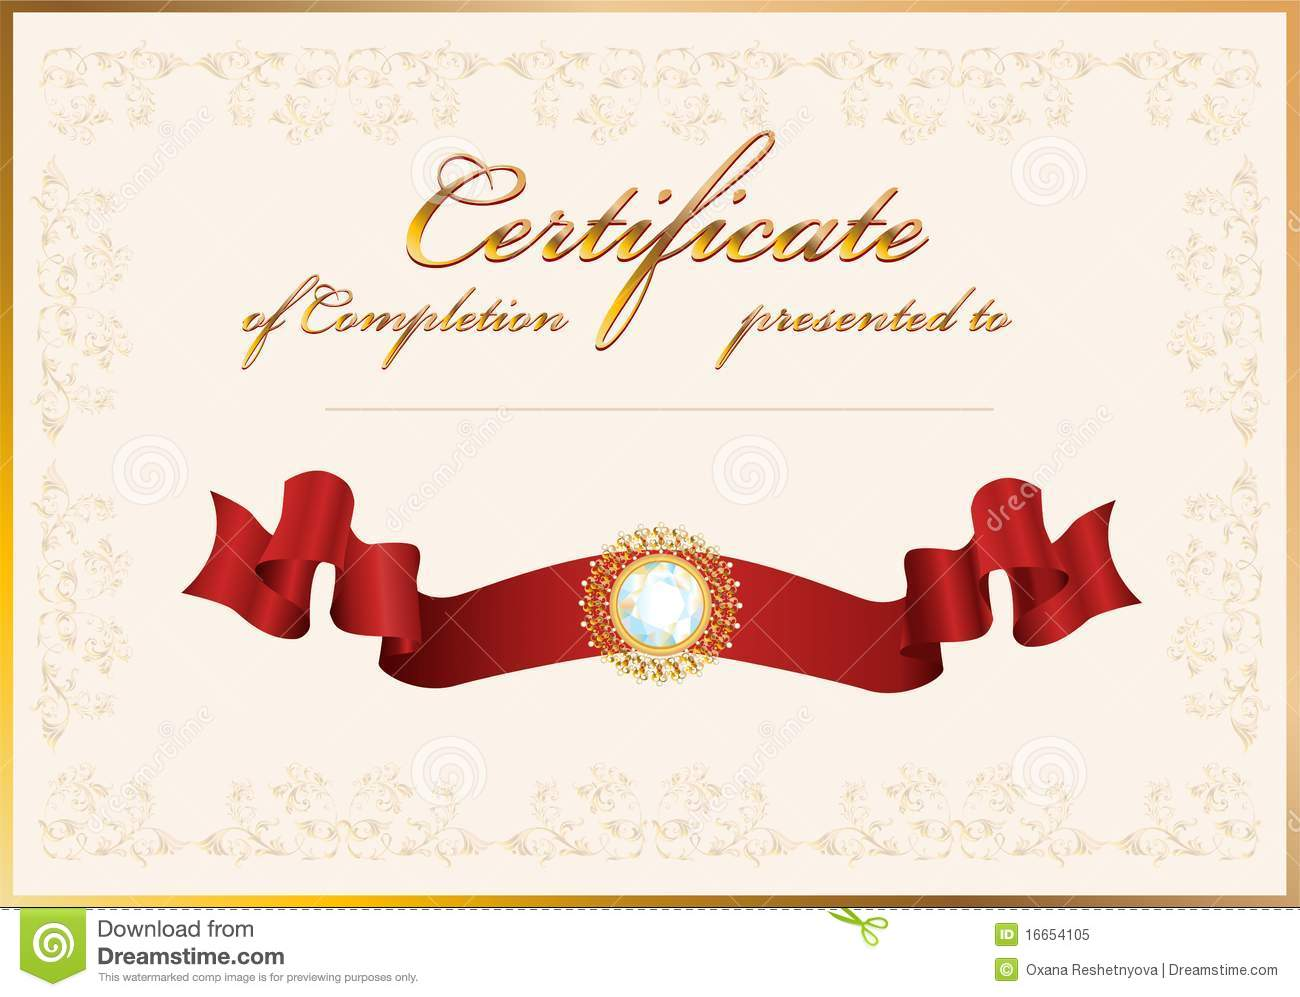 Certificate of completiontemplate stock vector image 16654105 royalty free stock photo download certificate of completiontemplate yadclub Images